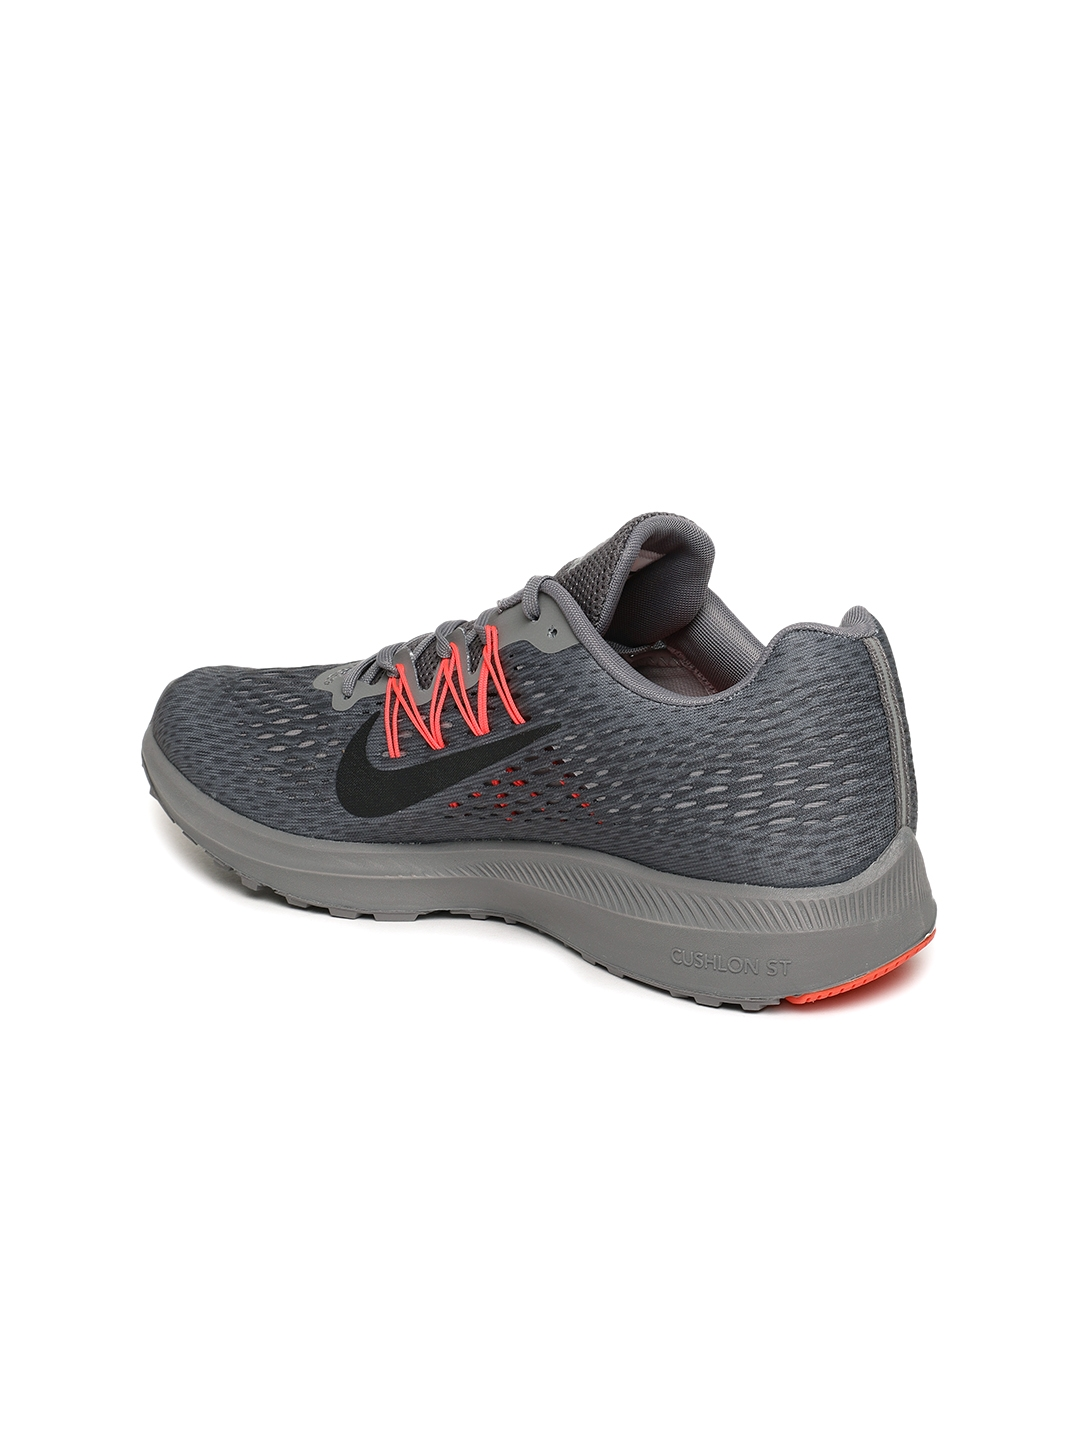 d07c37cc740 Buy Nike Men Grey Air Zoom Winflo 5 Running Shoes - Sports Shoes for ...